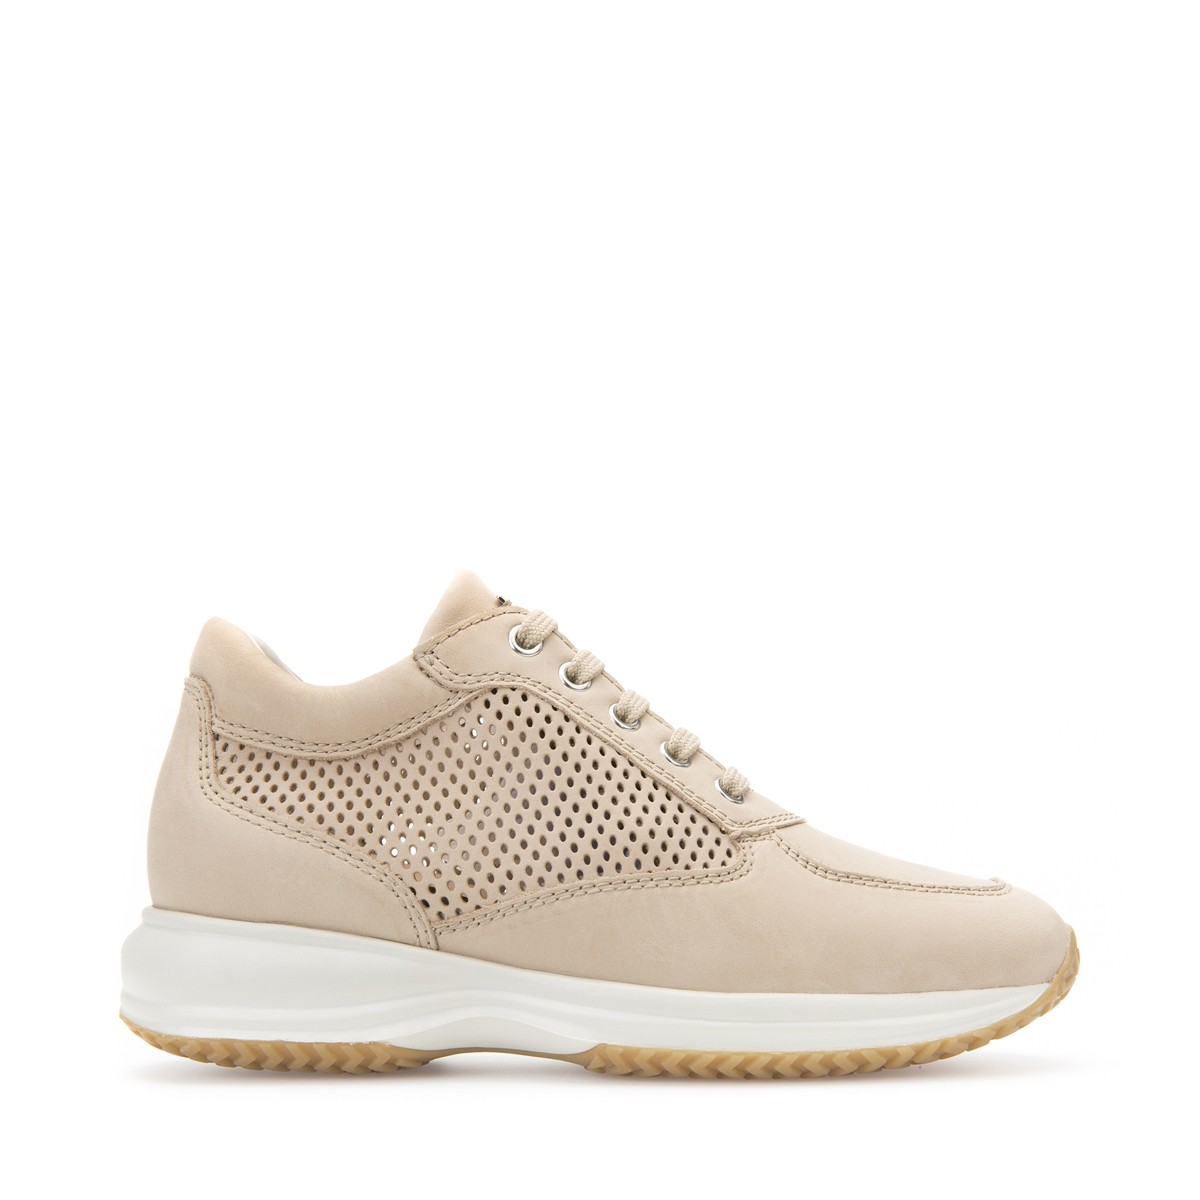 Alta qualit SNEAKERS DONNA HAPPY GEOX